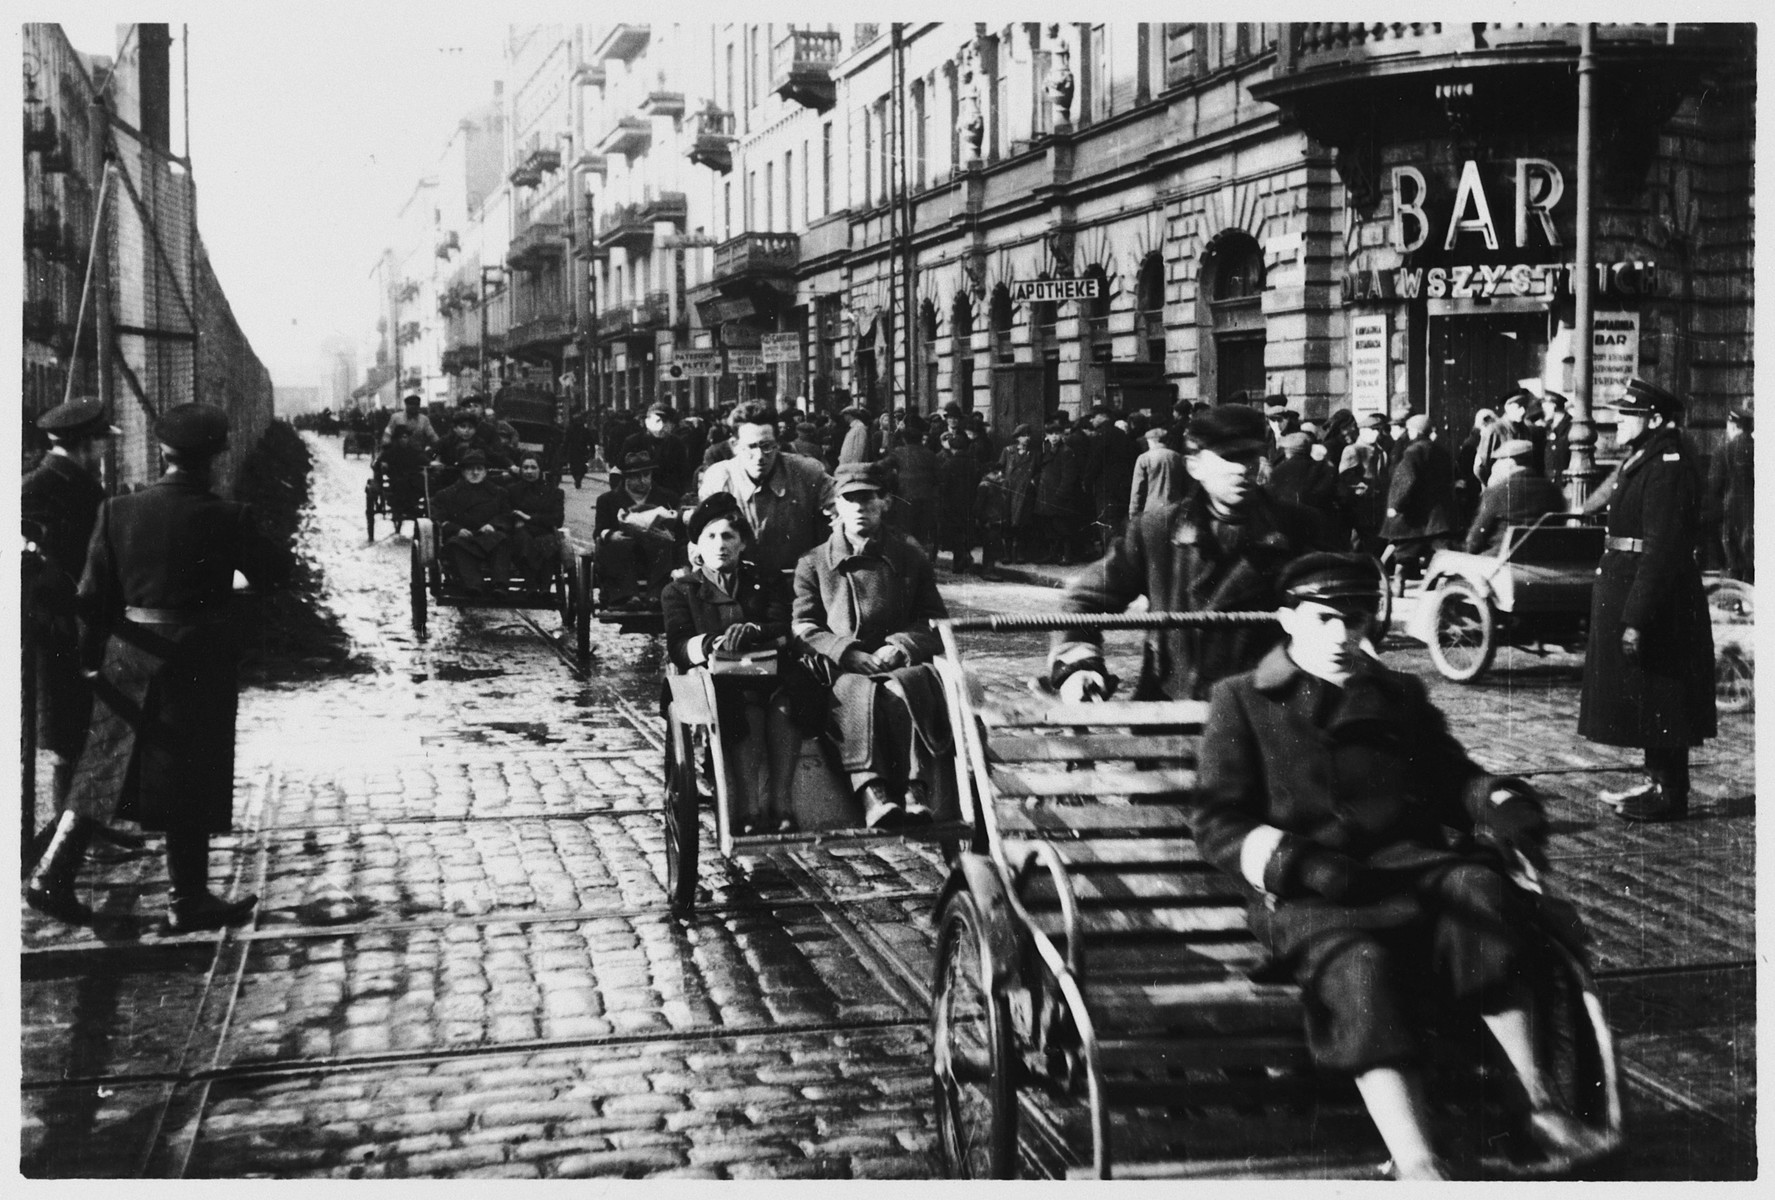 Bicycle-powered rickshaws transport Jews down a crowded street in the Warsaw ghetto.